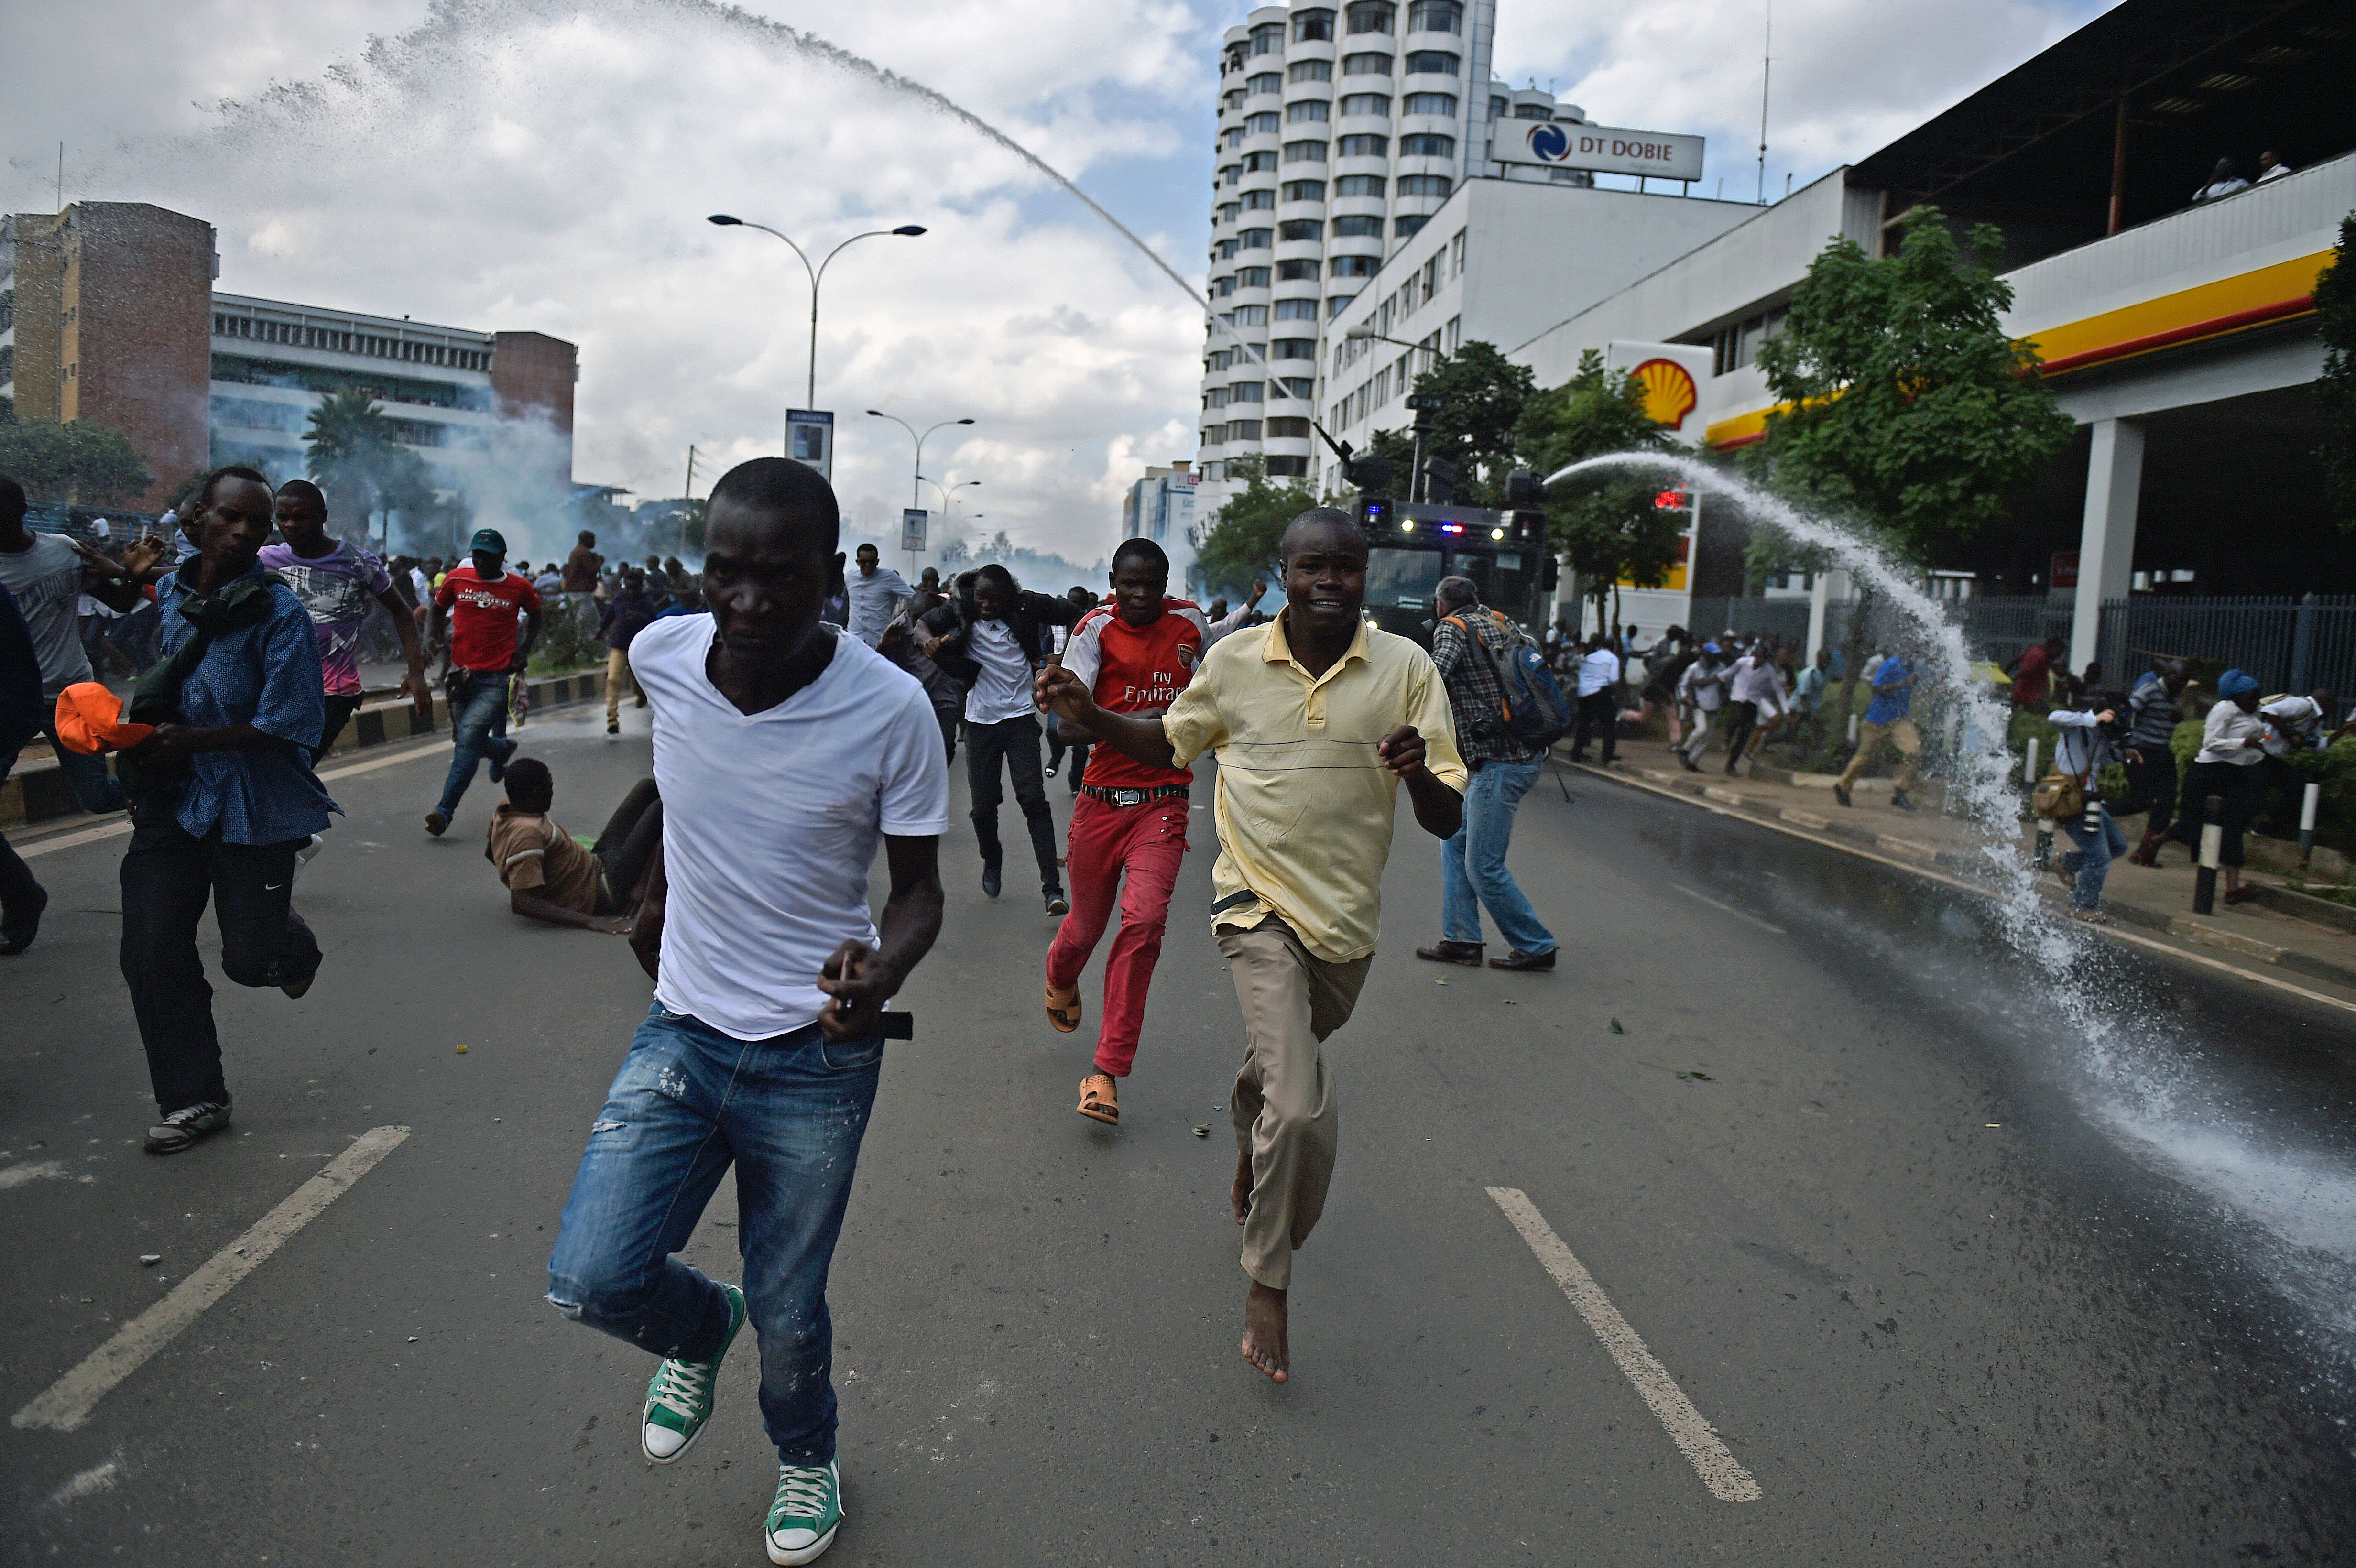 TOPSHOT - Protestors run from water canons after Kenya's opposition supporters demonstrated in Nairobi, on May 16, 2016. Opposition protestors led by former Prime Minister Raila Odinga had gathered outside the Indepedent Electoral and Boundaries Comission building to demand the dismissal of IEBC commissioners from office citing alleged bias towards the ruling Jubillee Alliance Party. / AFP / CARL DE SOUZA        (Photo credit should read CARL DE SOUZA/AFP/Getty Images)